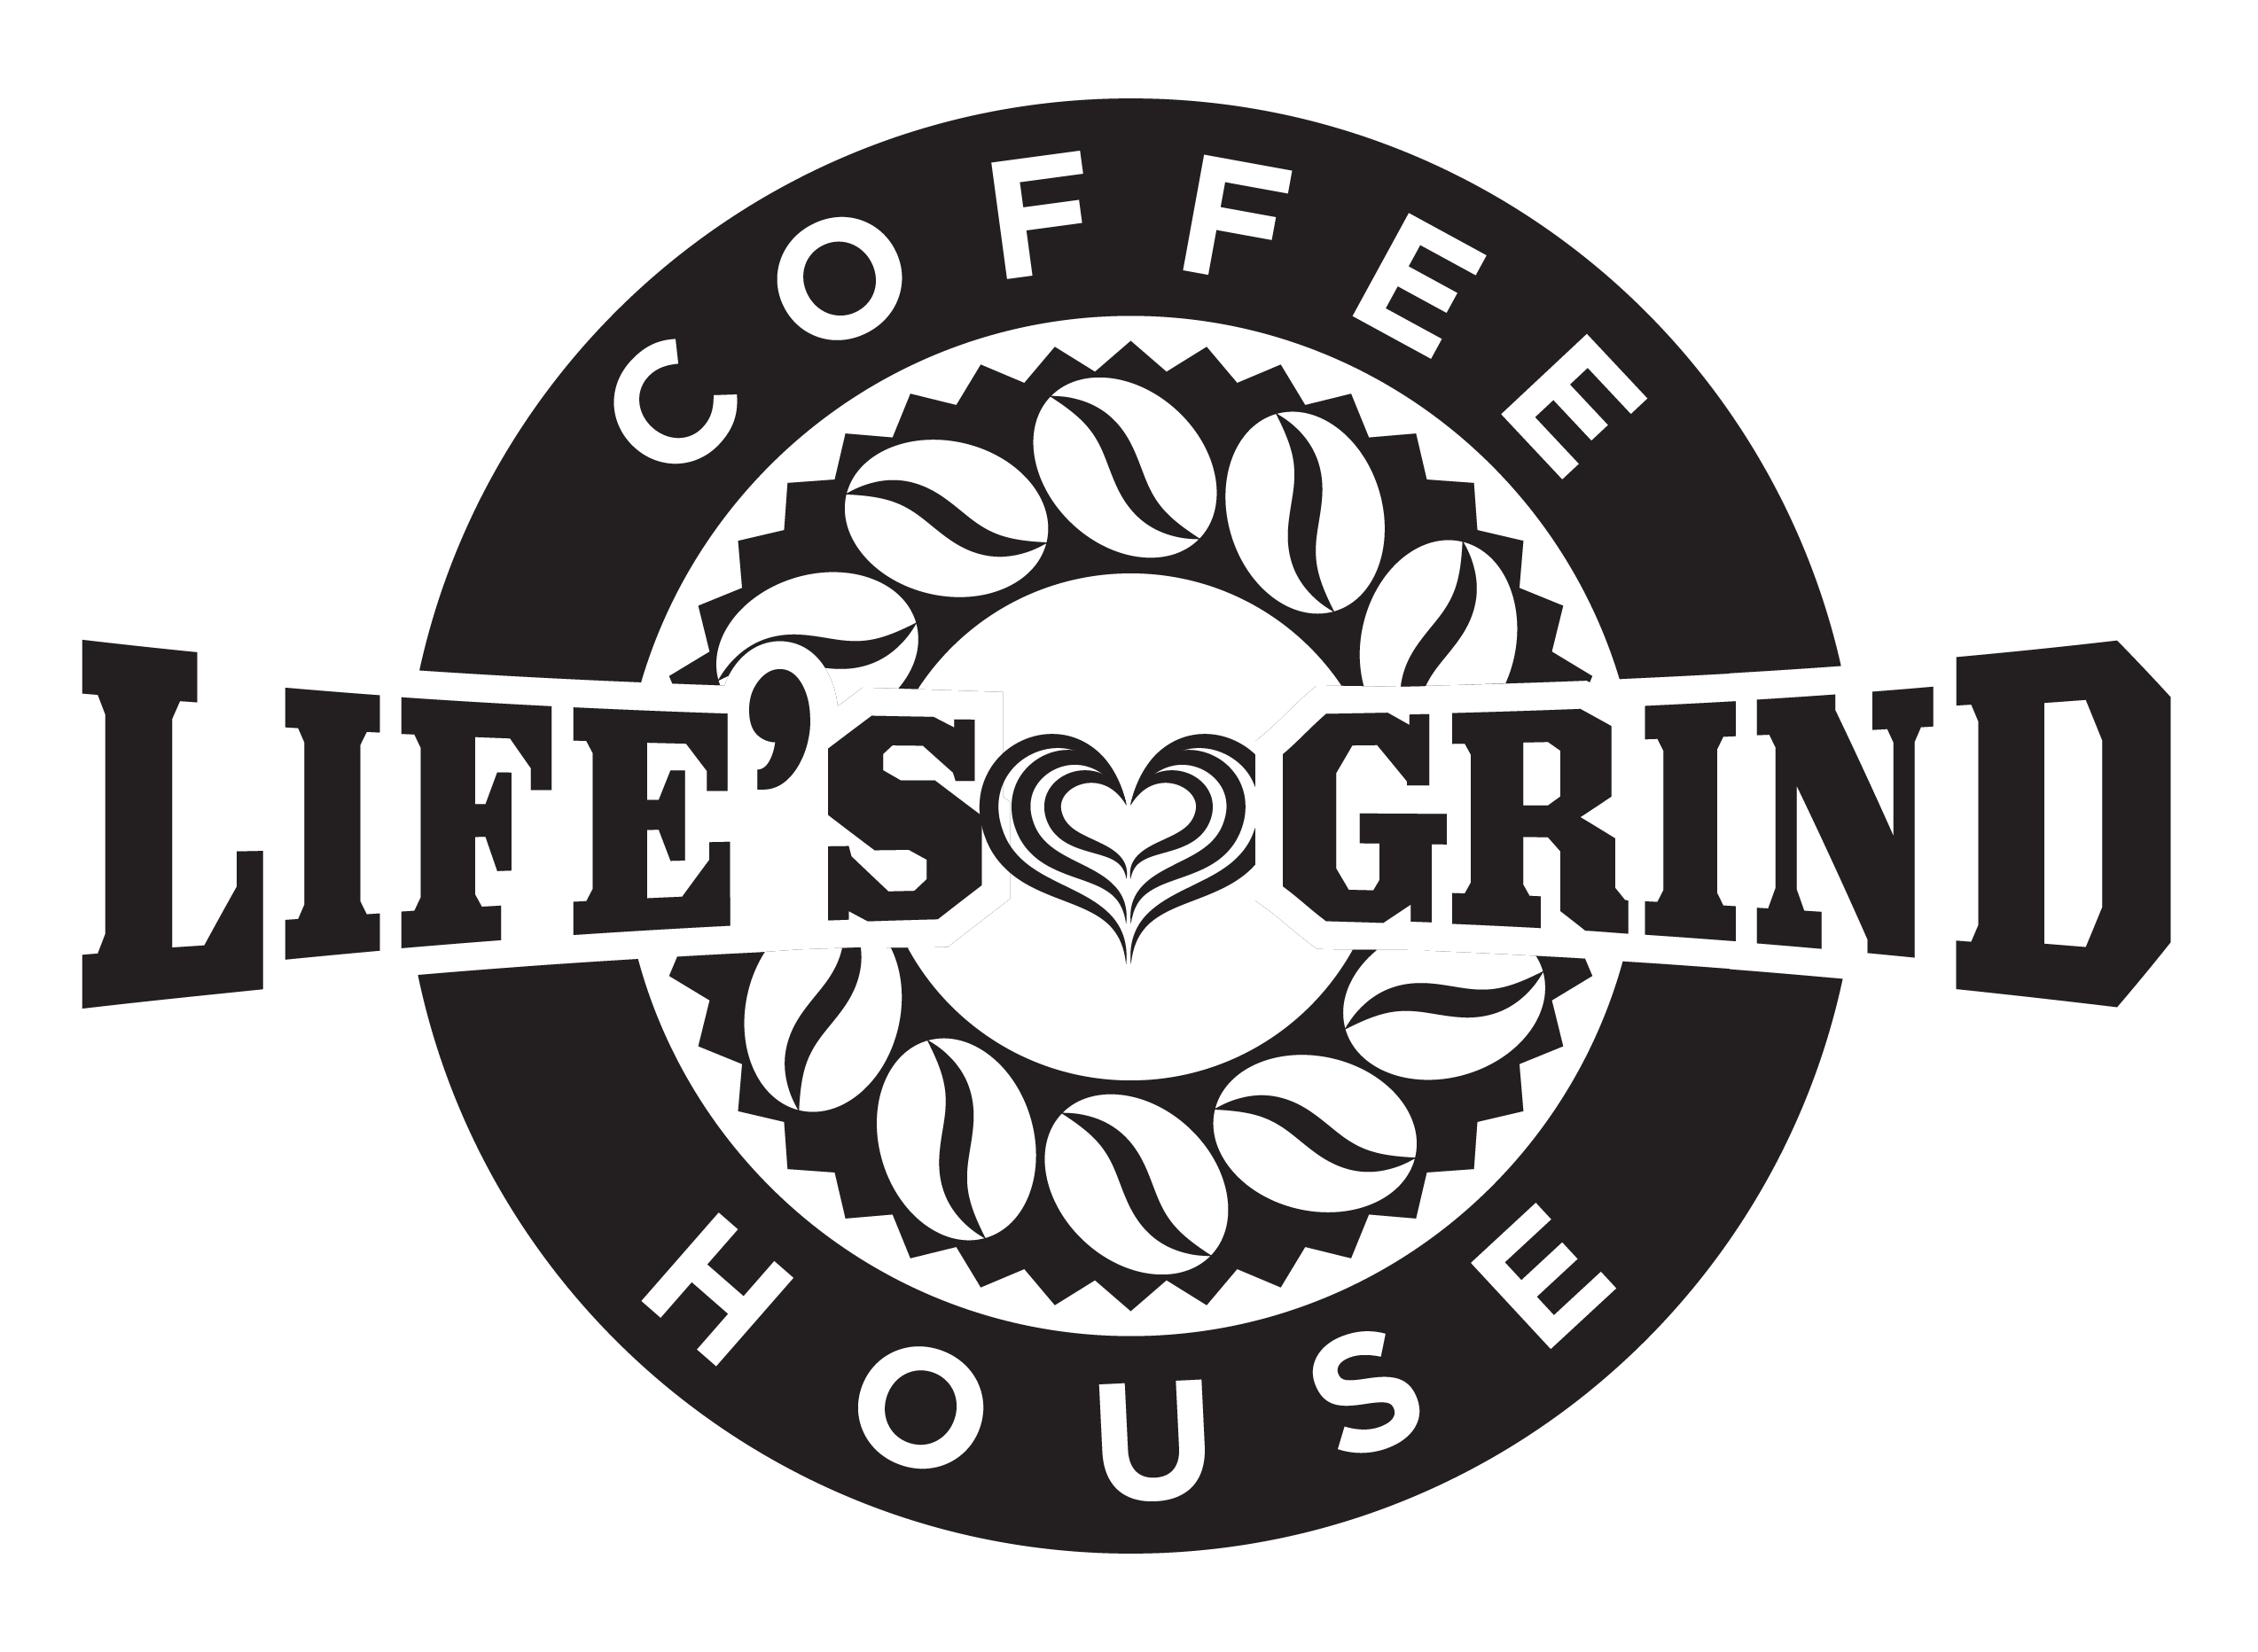 Life's Grind Coffee House logo - June 28 2021